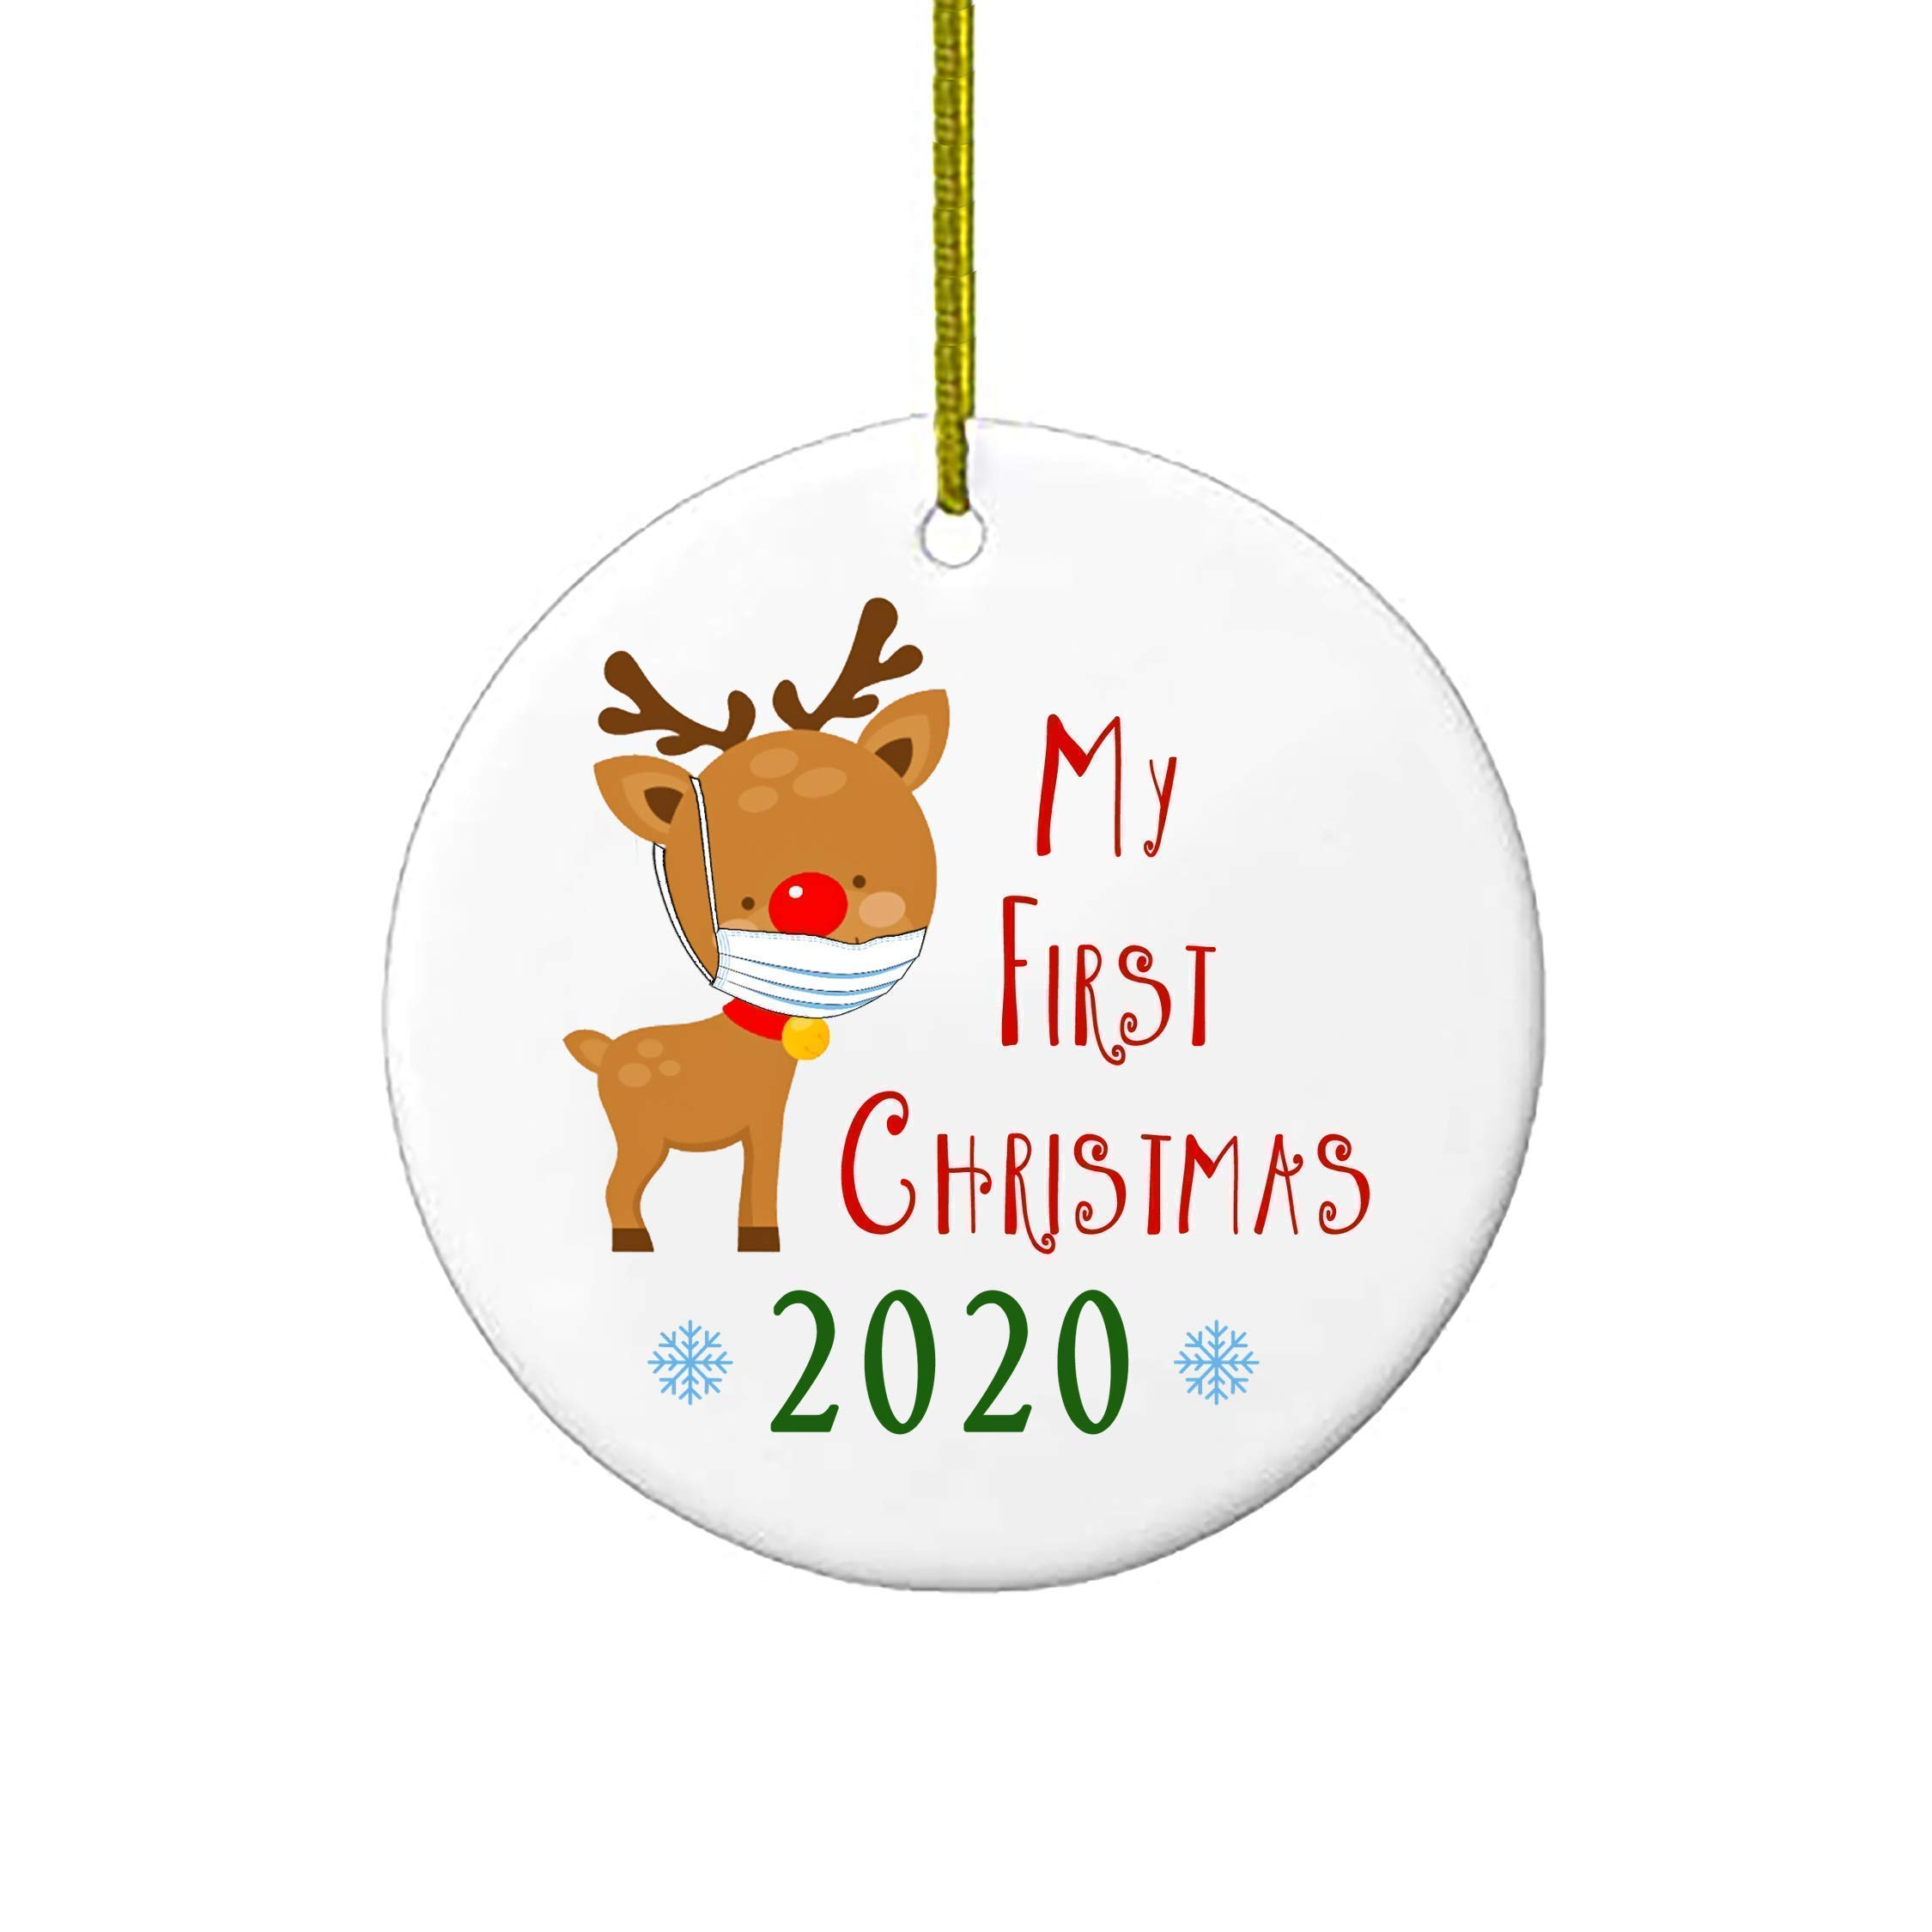 Christmas Ornaments My First Christmas Reindeer With Mask 2020 Baby 1st Xmas Ornament Personalized Gifts